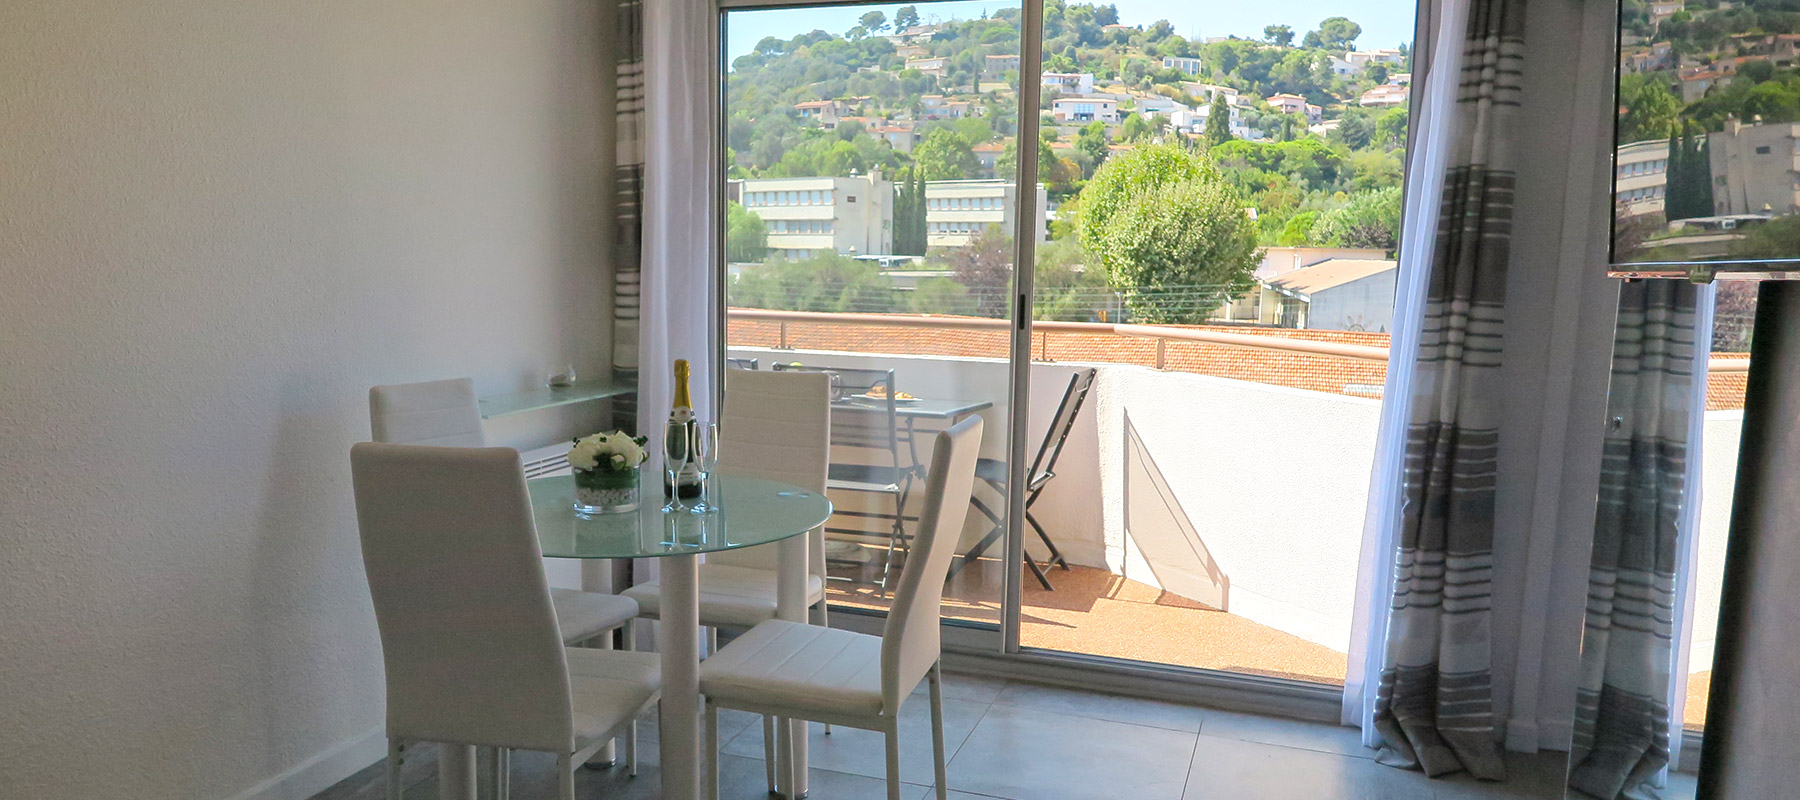 location-appartement-maison-cannes-antibes-vallauris-06-22